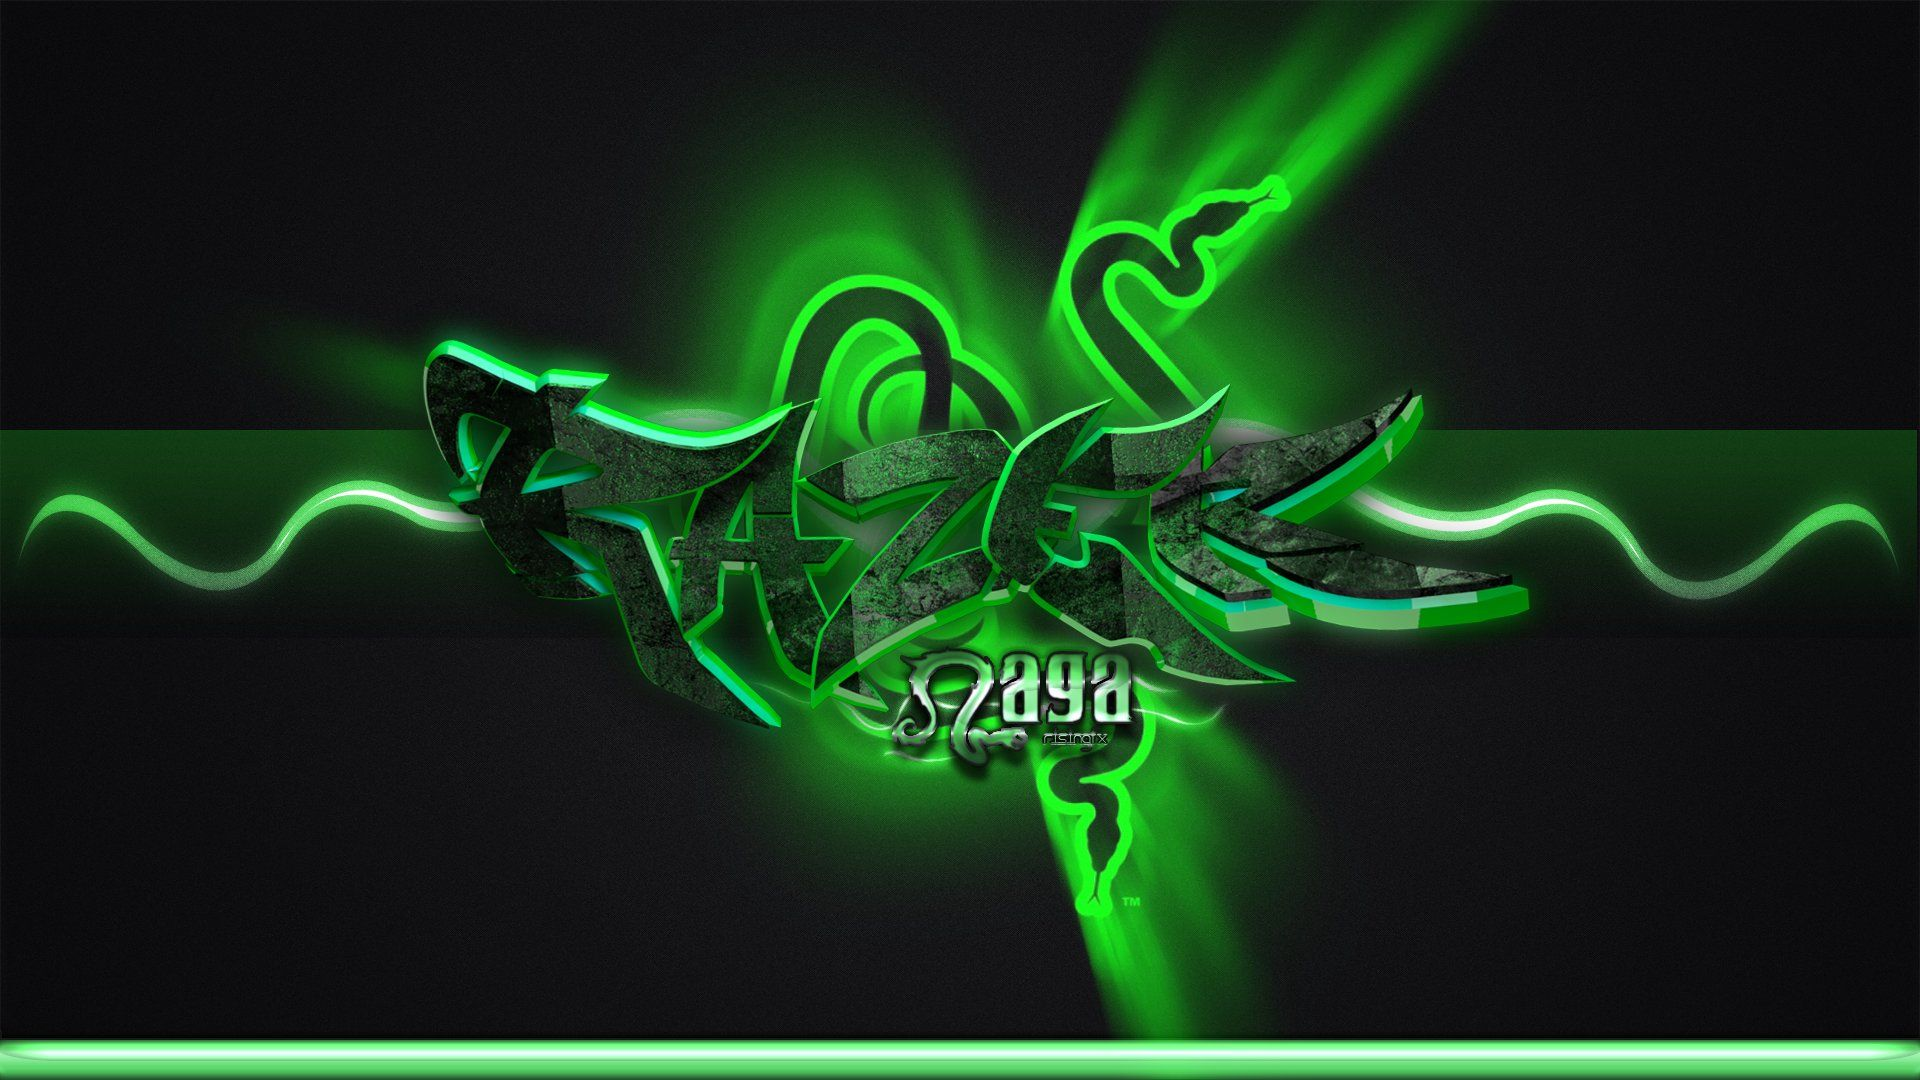 Razer Gaming Computer Game 11 Wallpaper 1920x1080 400624 Hd Cool Wallpapers Desktop Wallpaper Full Hd Wallpaper